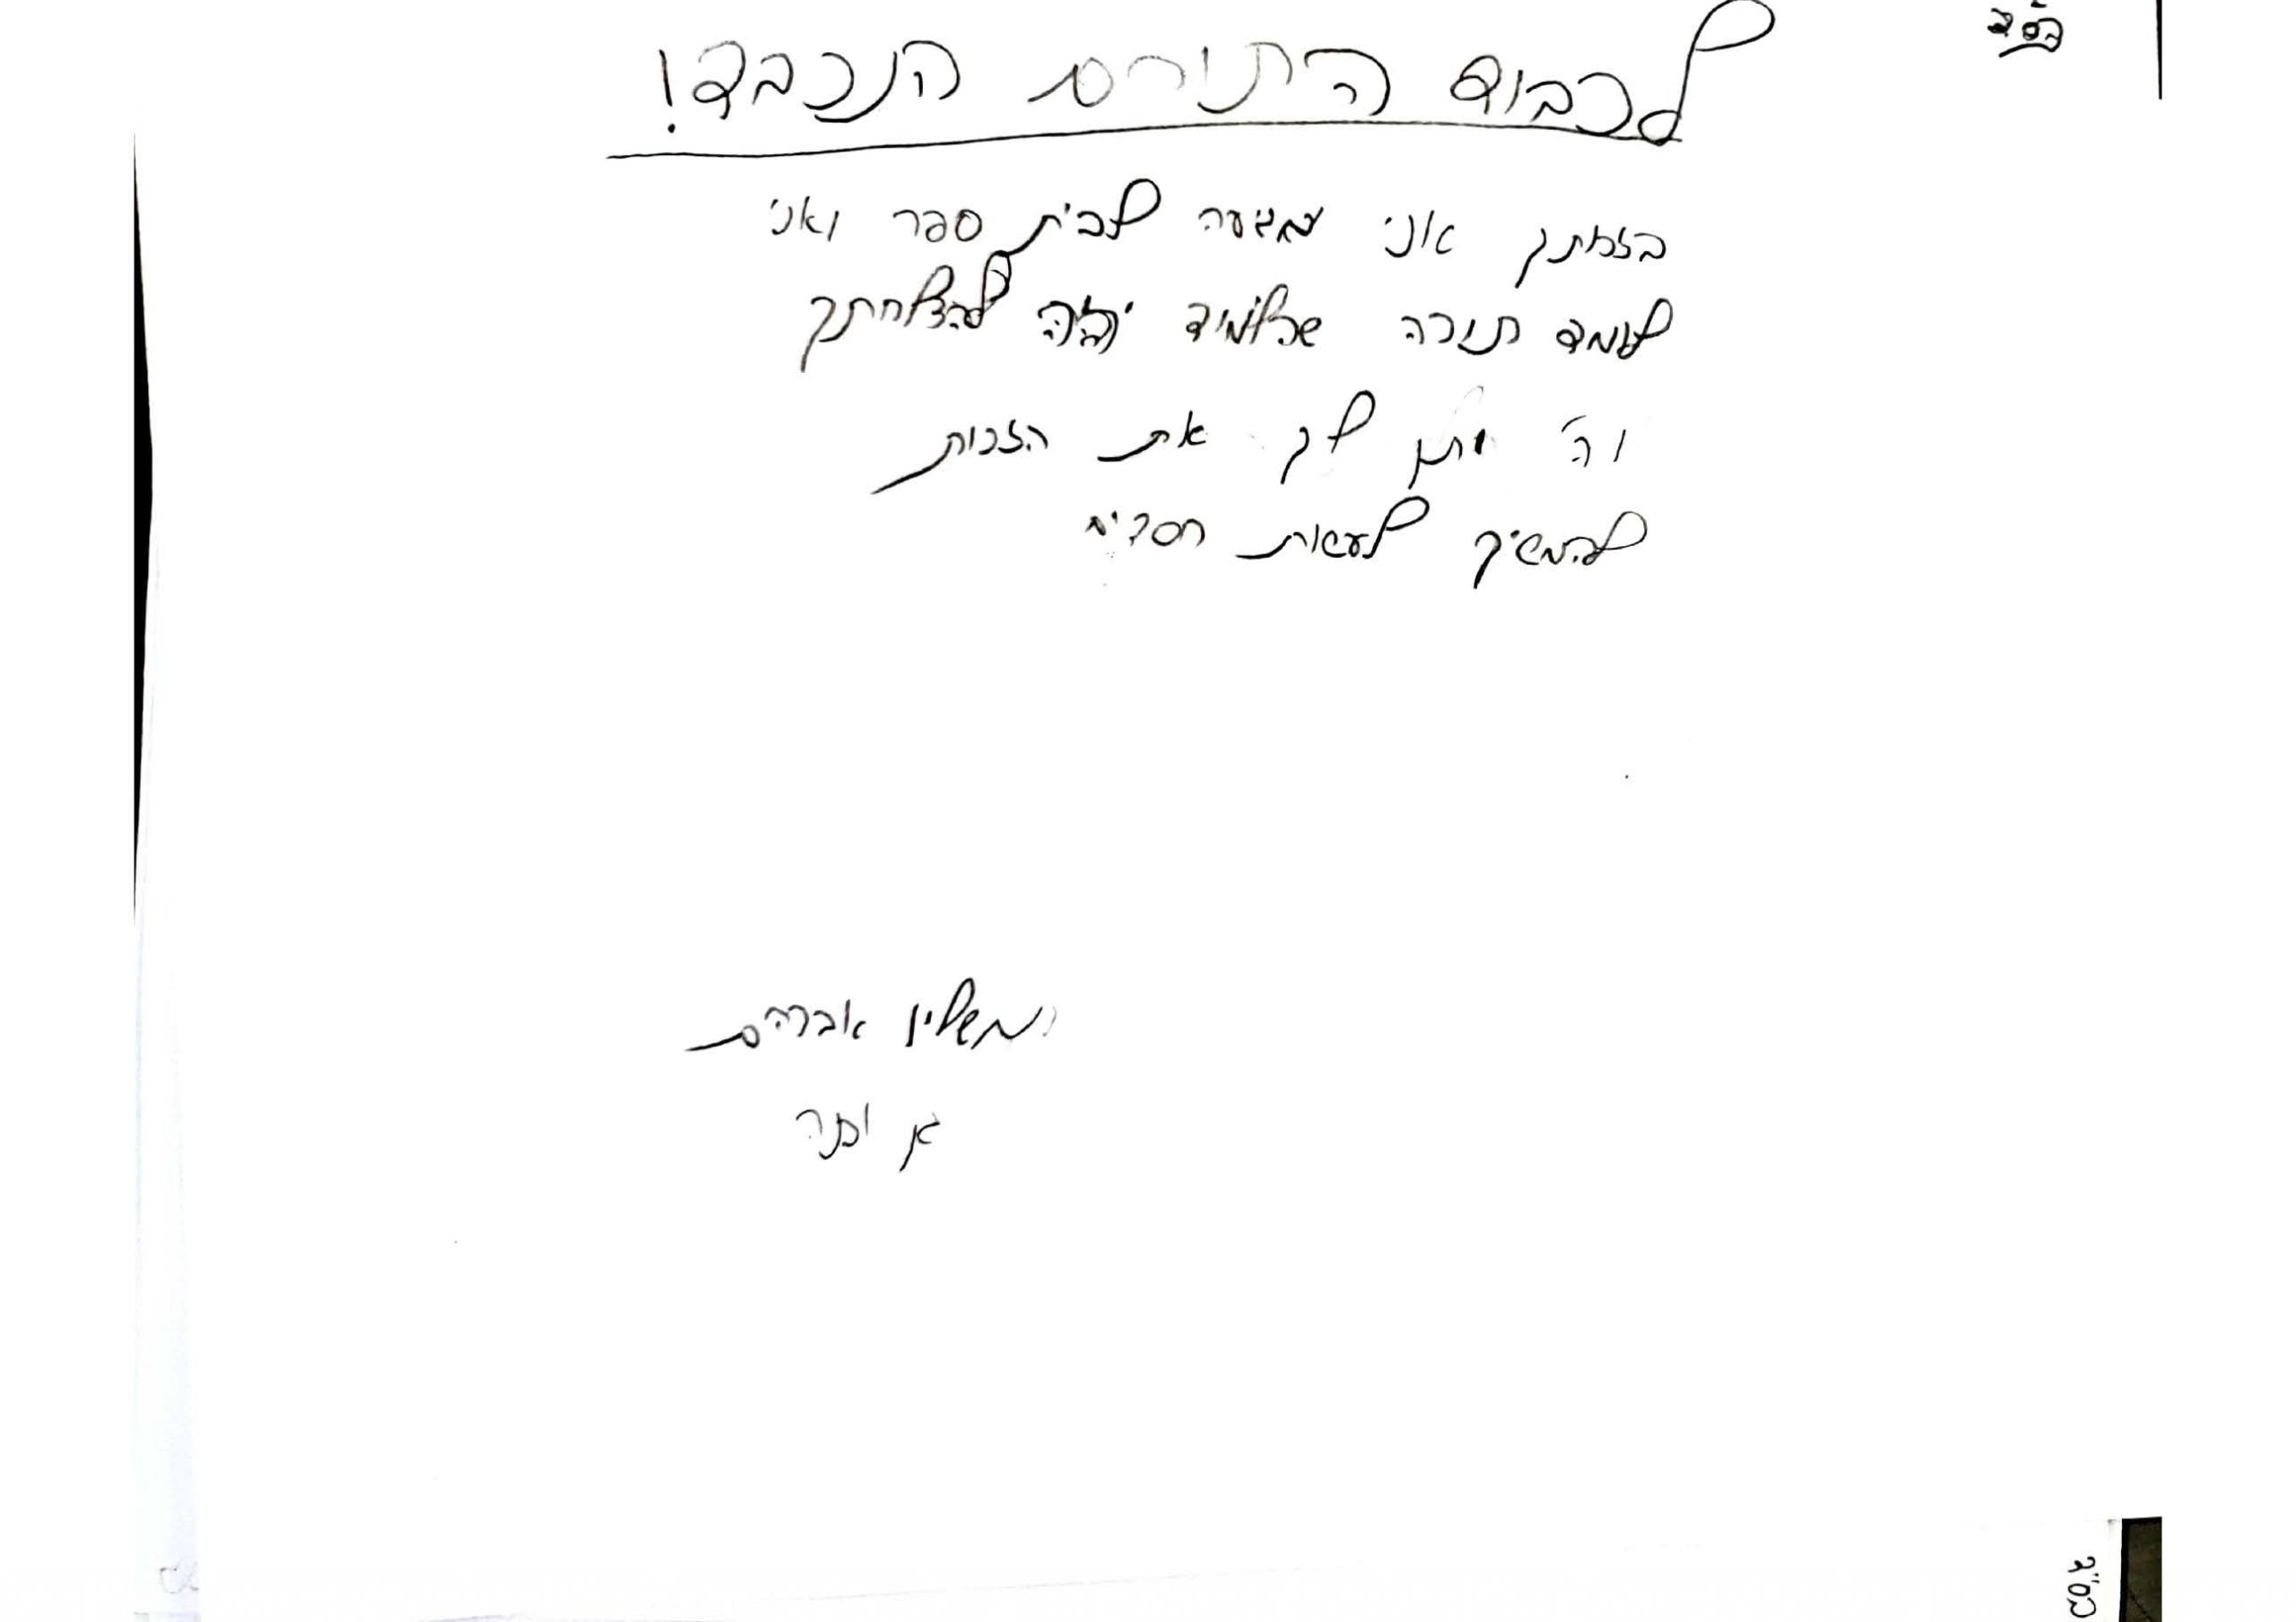 CamScanner 07-28-2021 09.13_Page_5